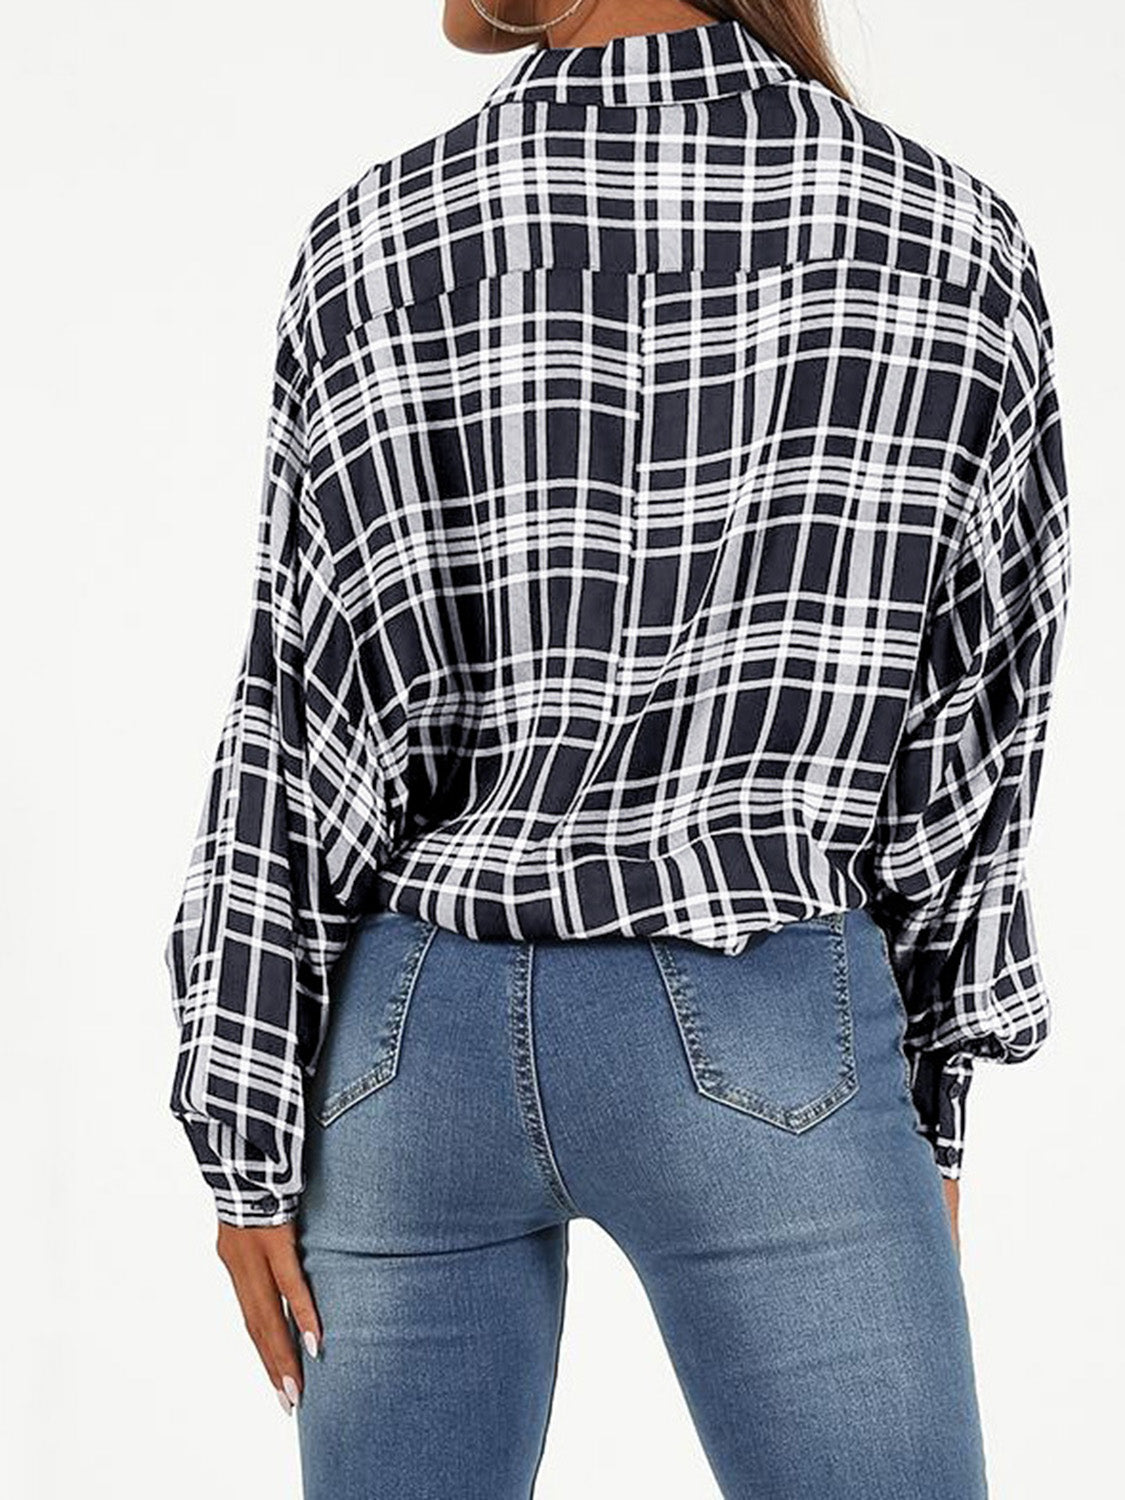 Black Women Crop Shirt Plaid Tie Front Long Sleeve